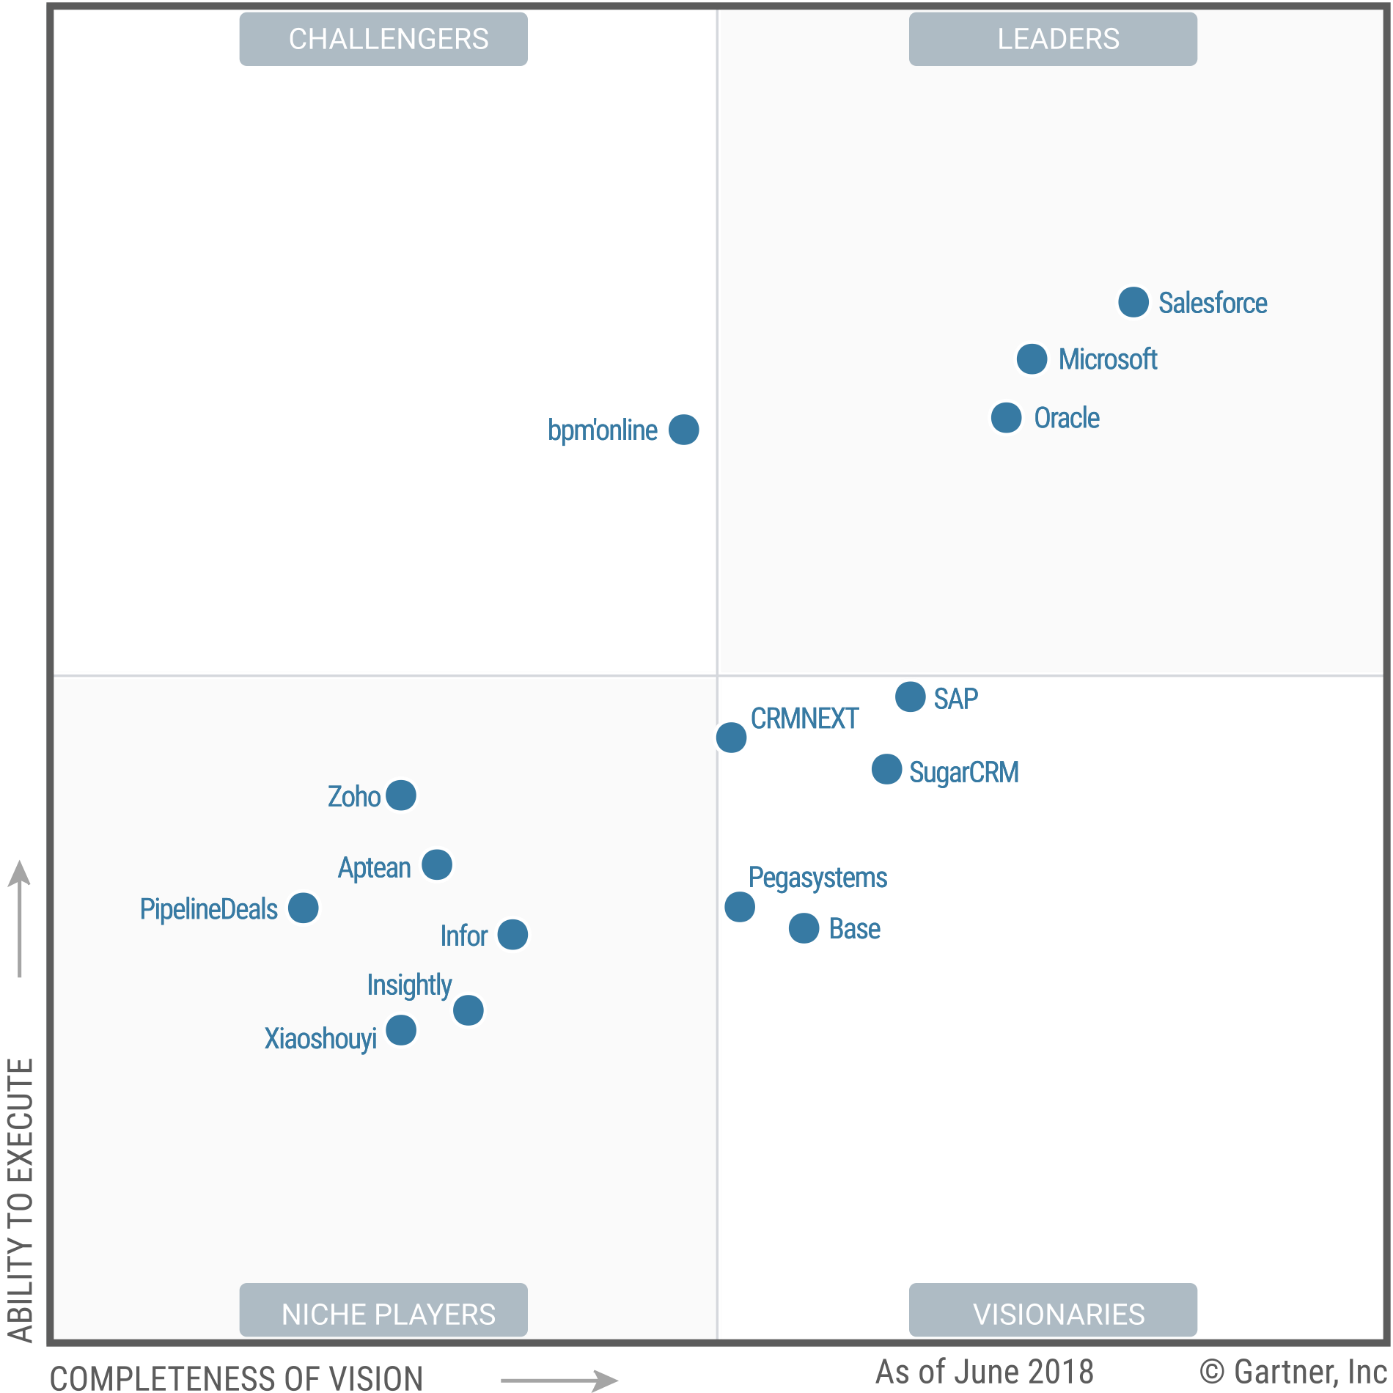 gartner magic quadrant for sales force automation 2018